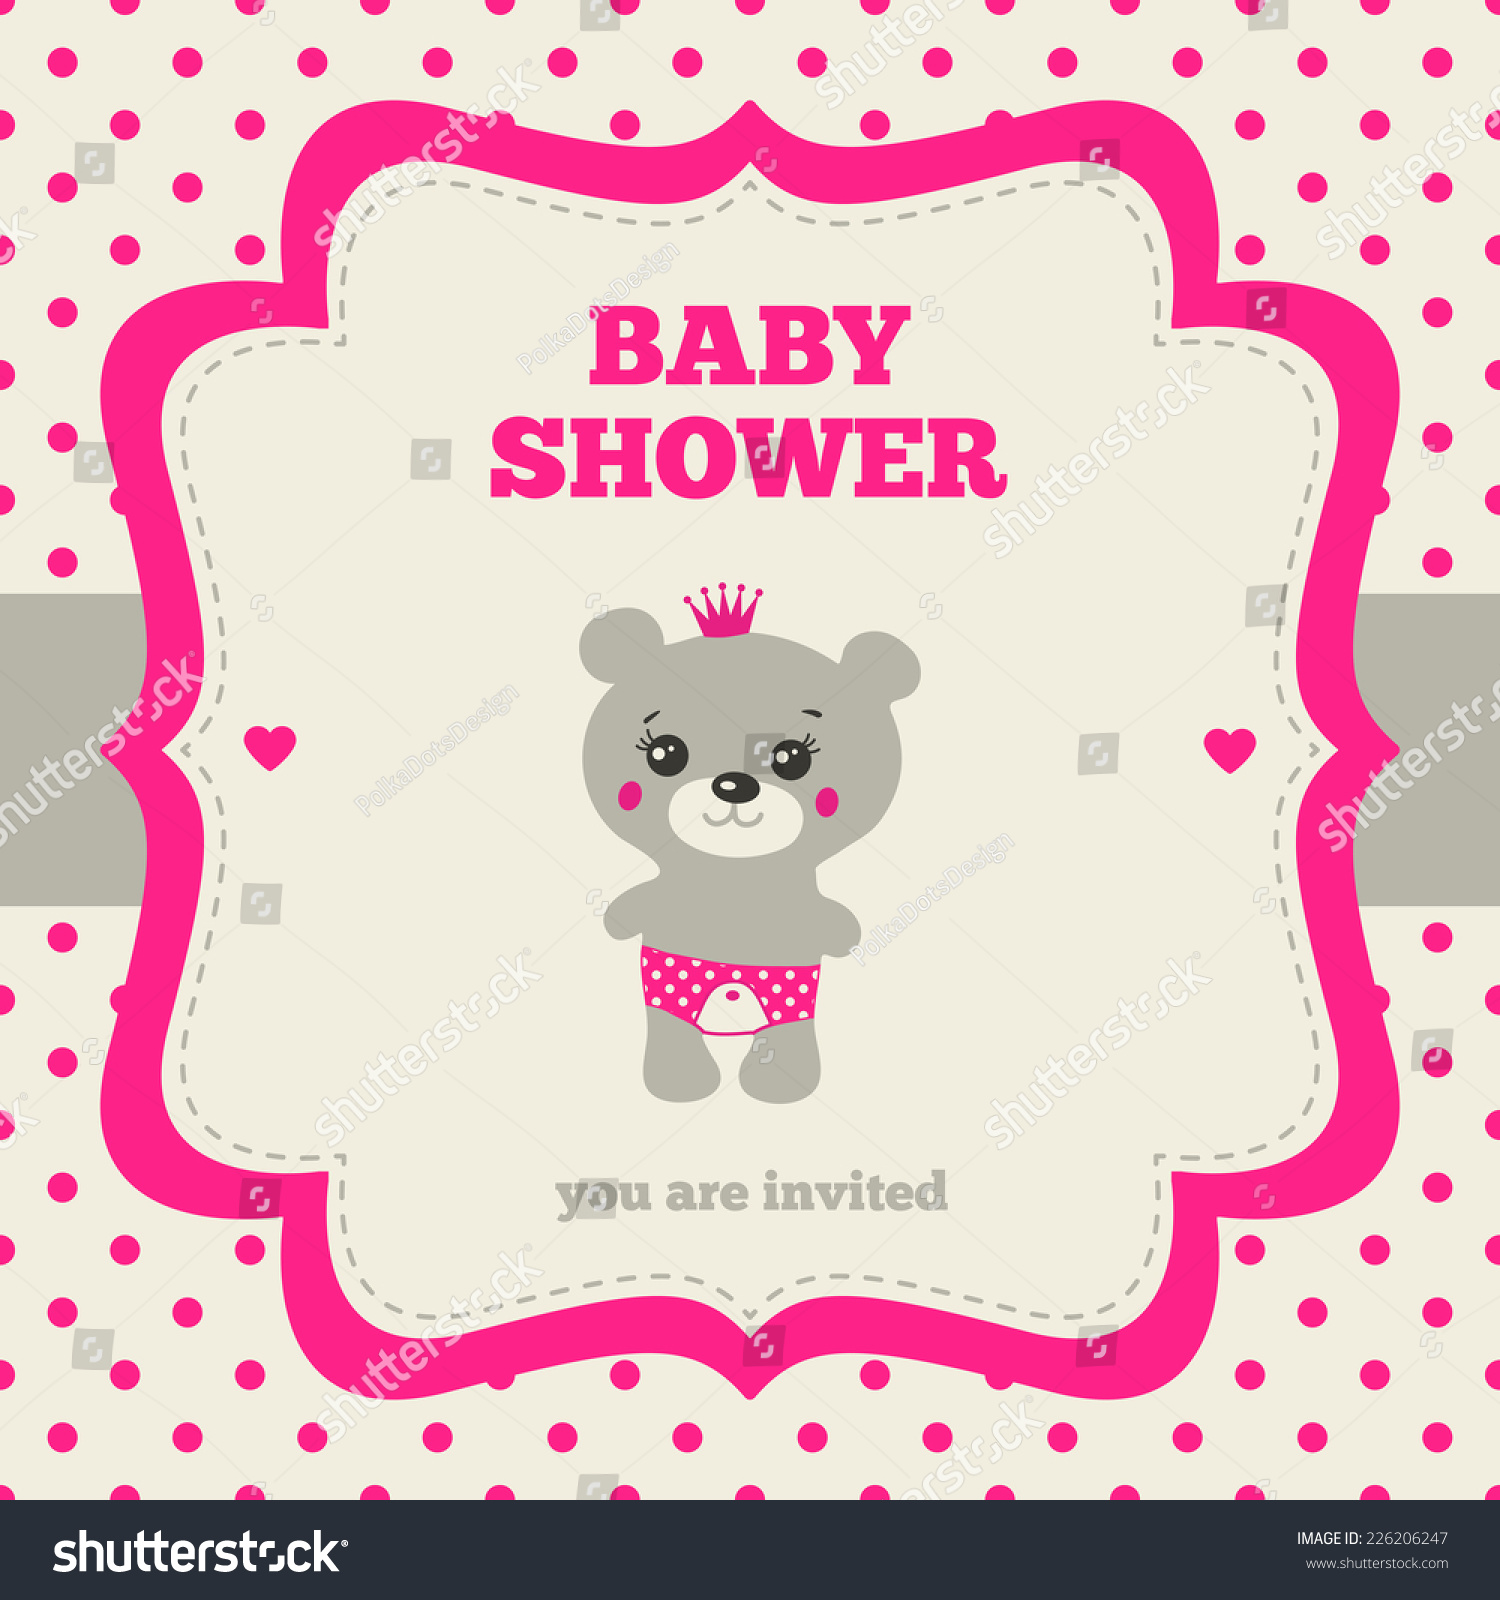 baby shower invitation template gray bright pink and cream colors